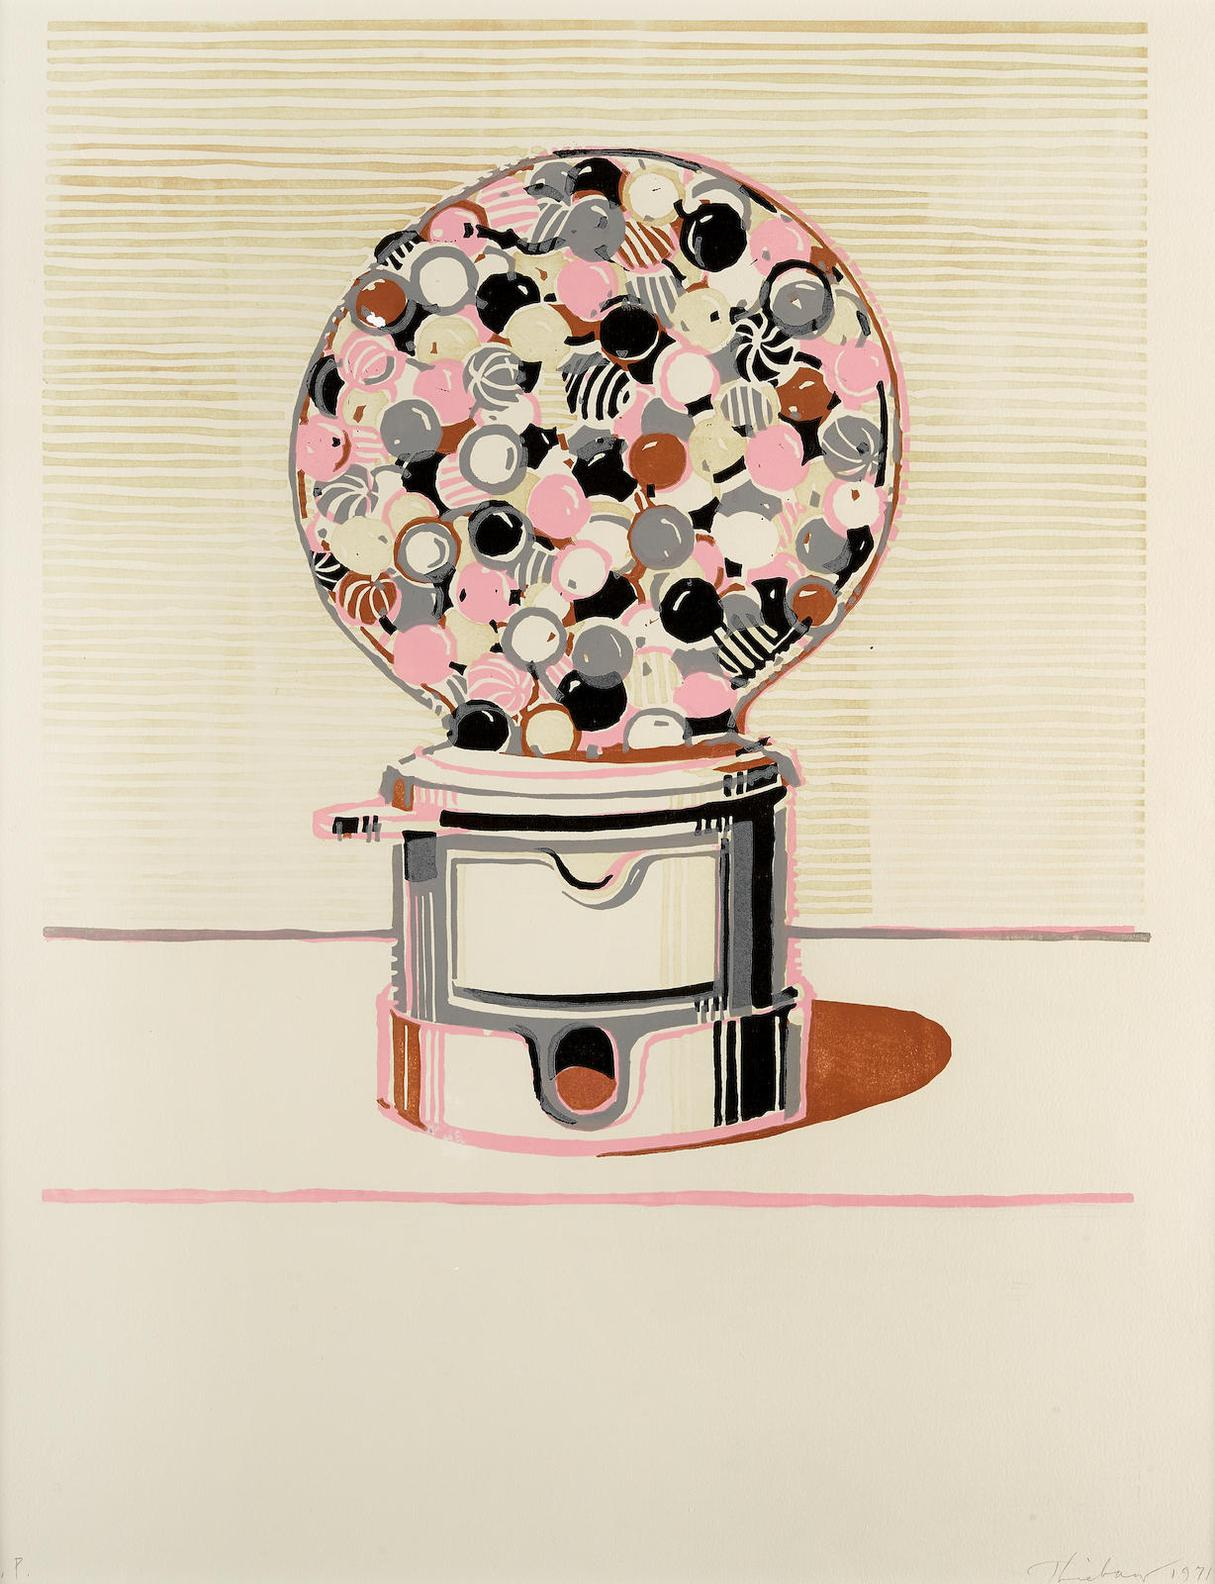 Wayne Thiebaud-Gumball Machine-1971